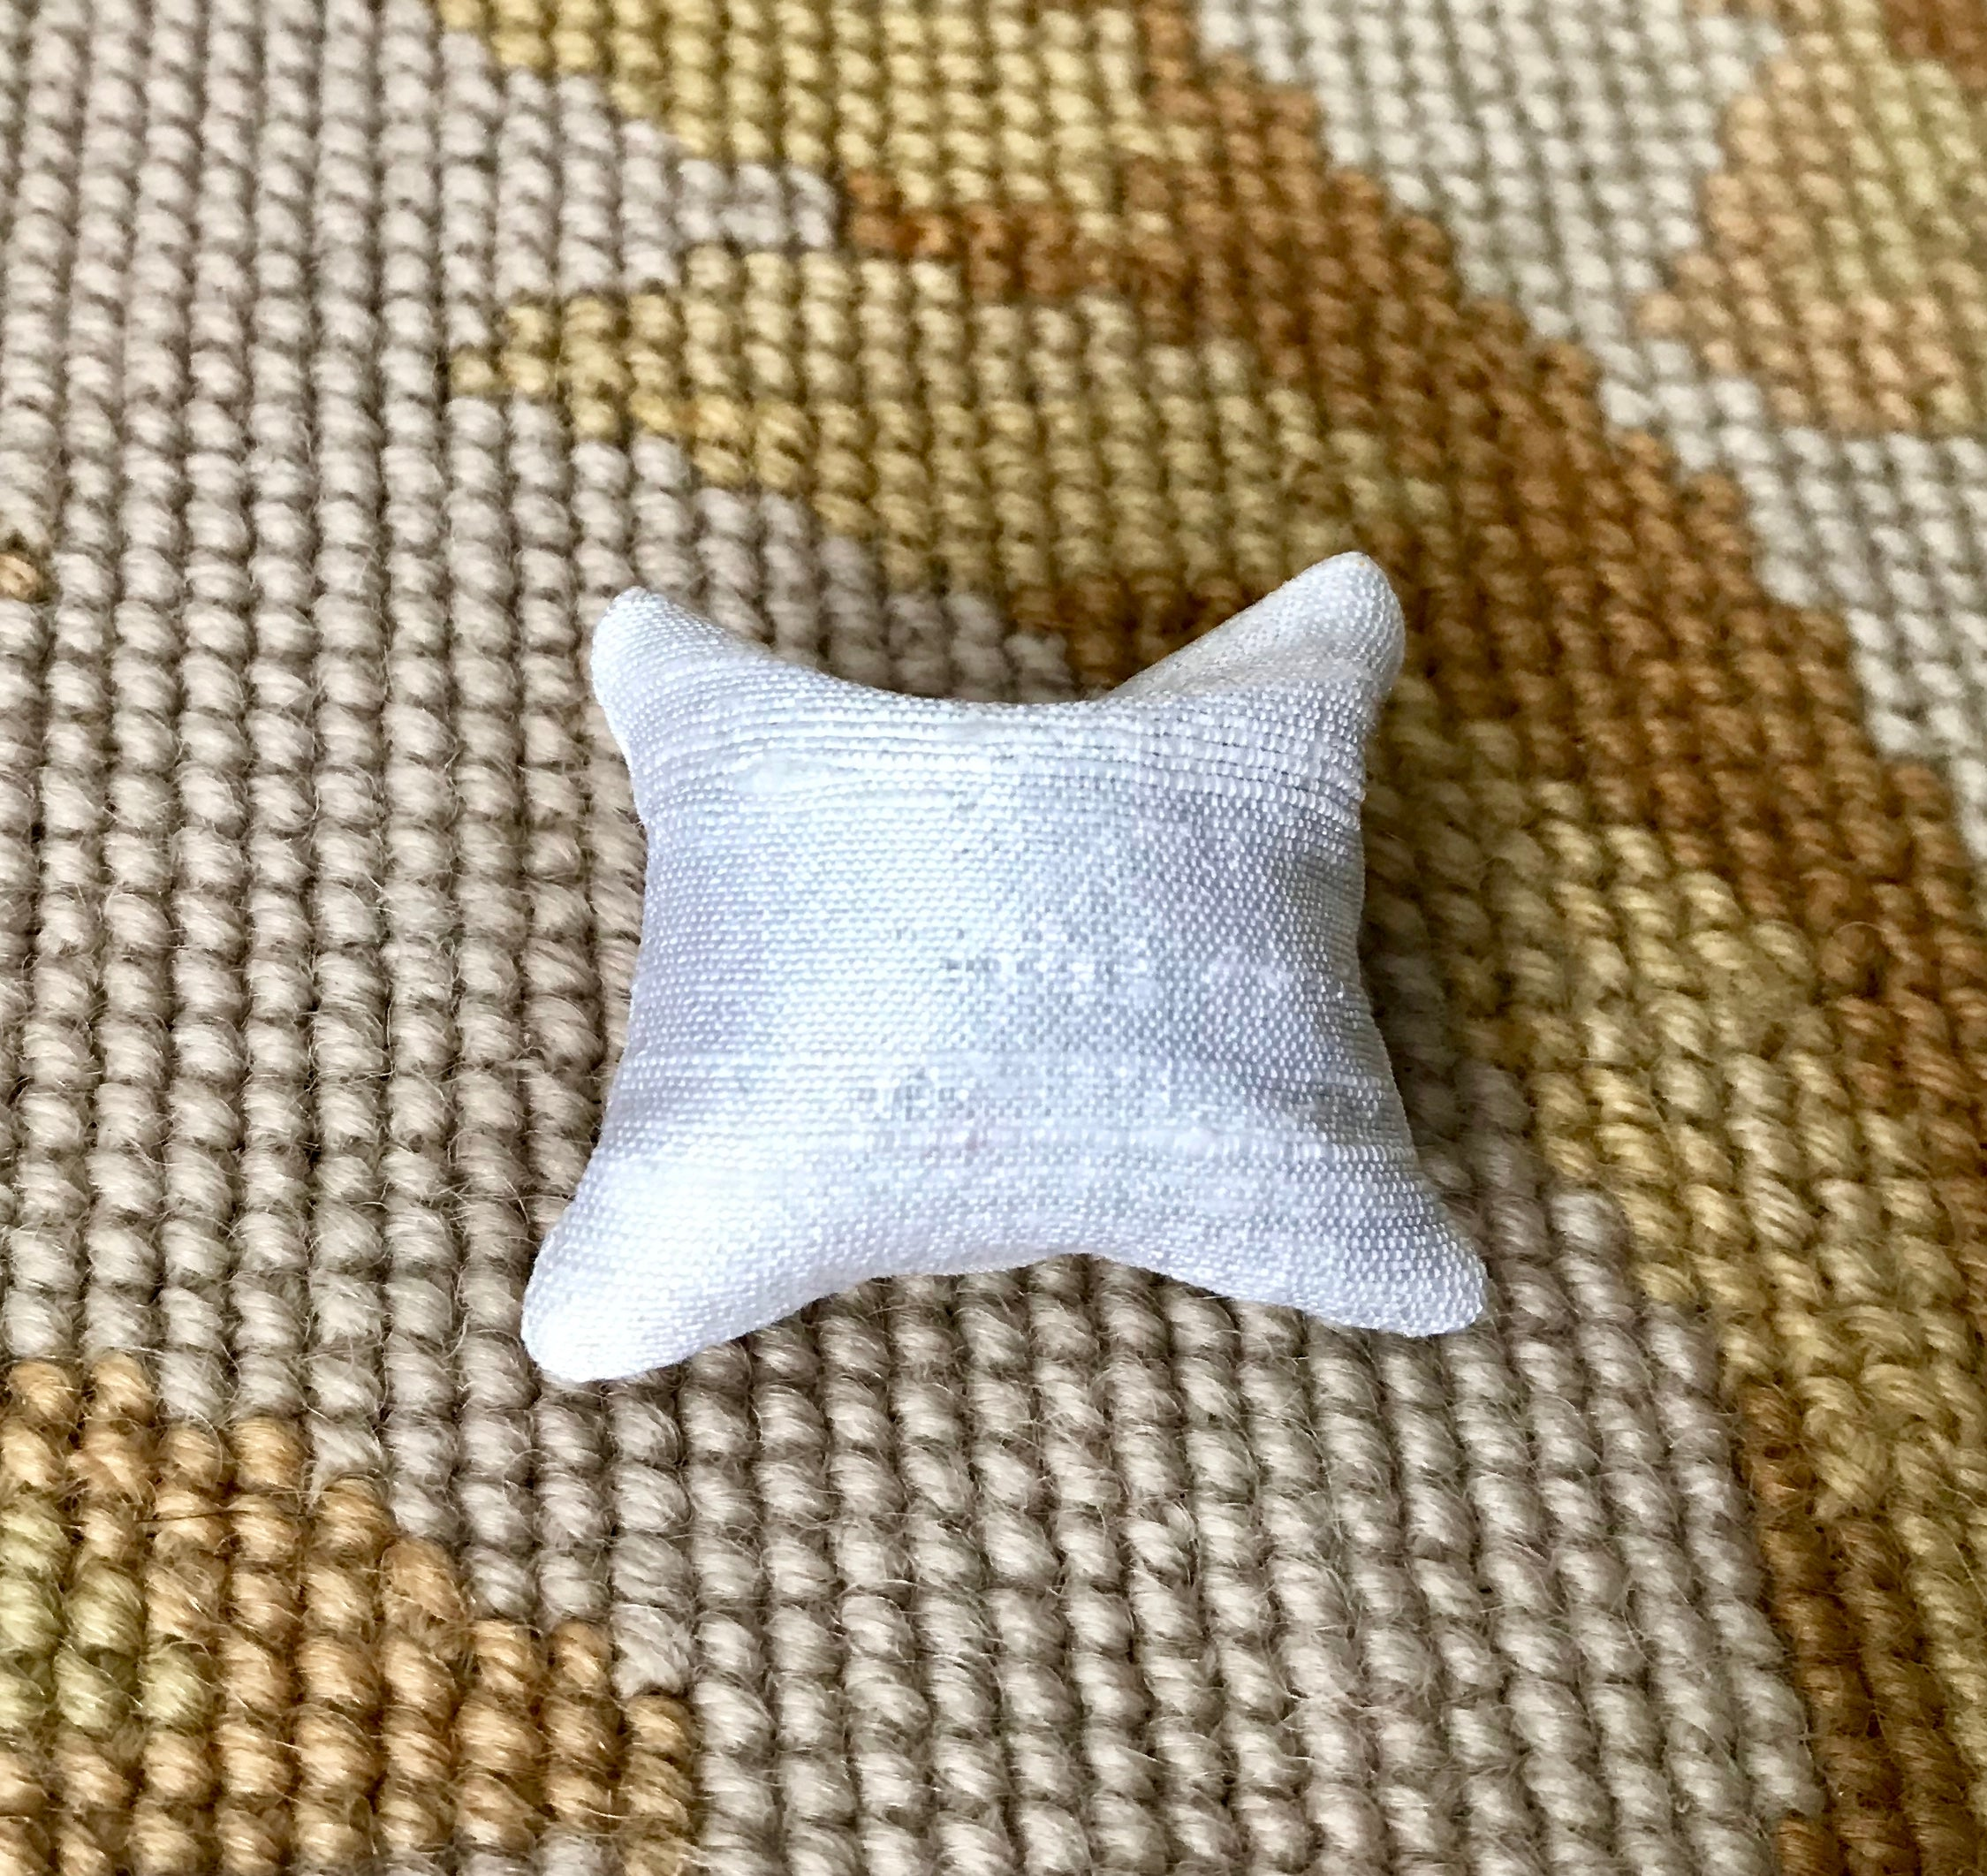 Pillow Cushion Hunt Fabric 1:12 Dollhouse Miniature